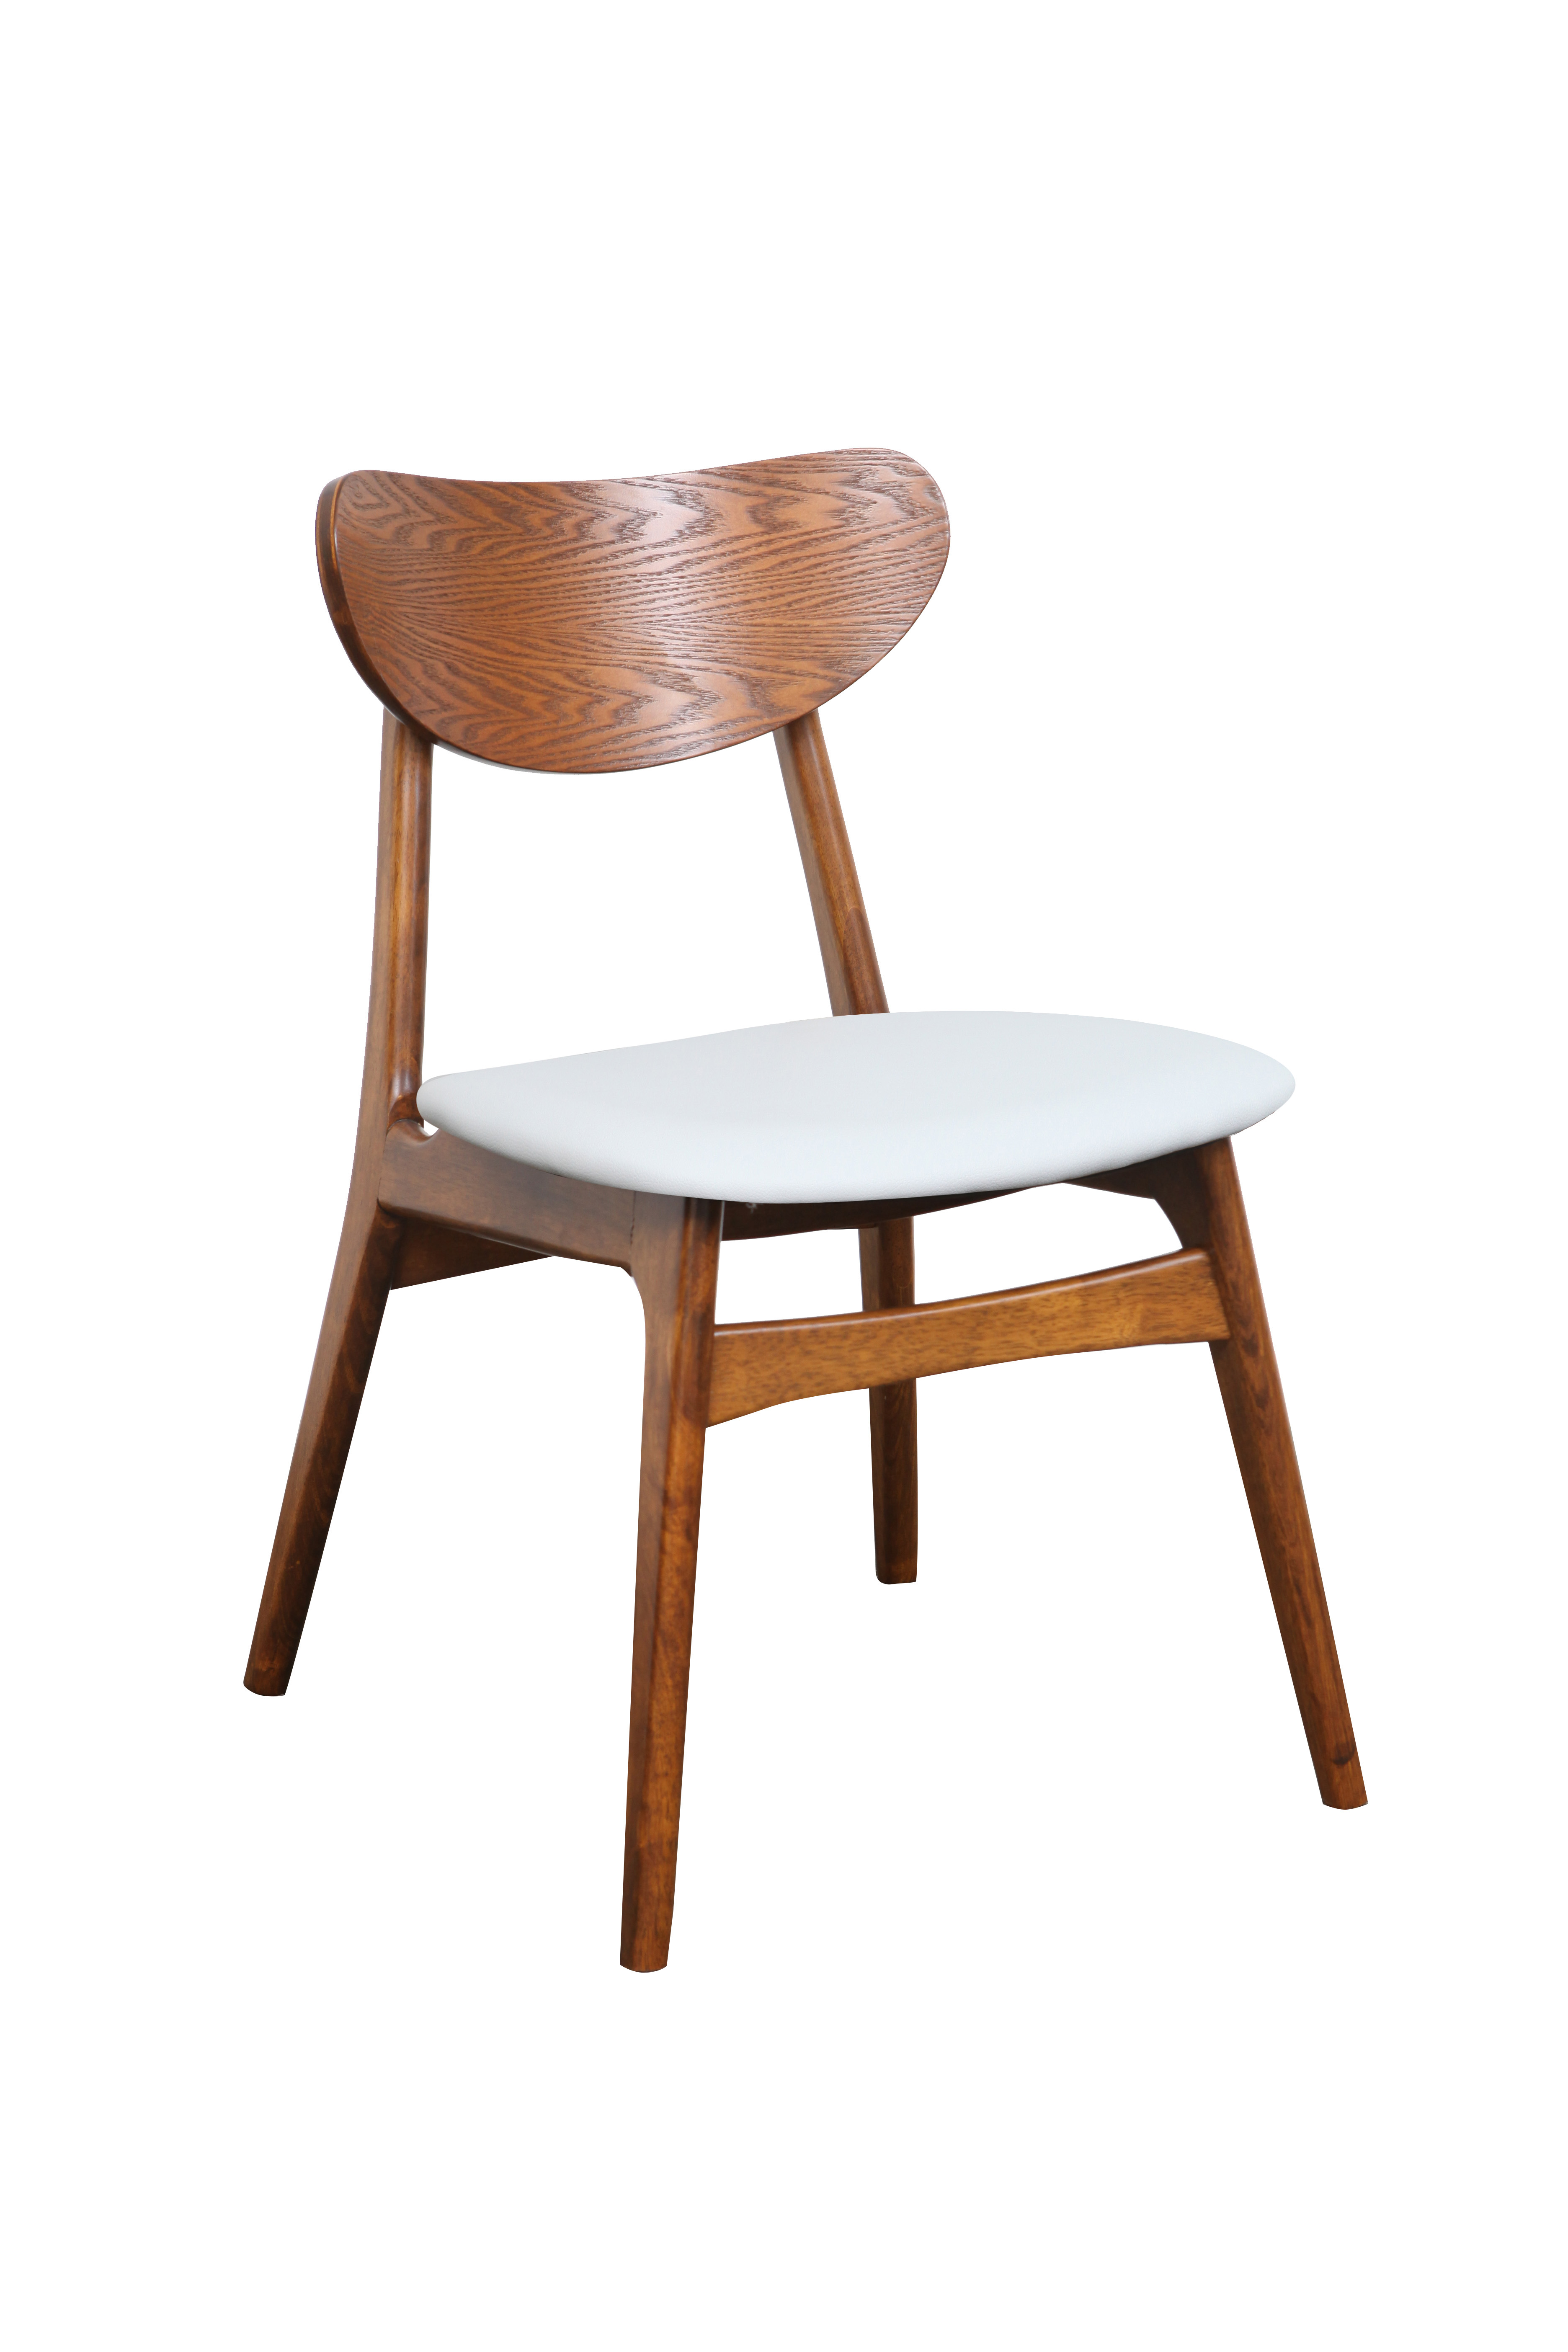 Finland Dining Chair Home High Quality Furniture At